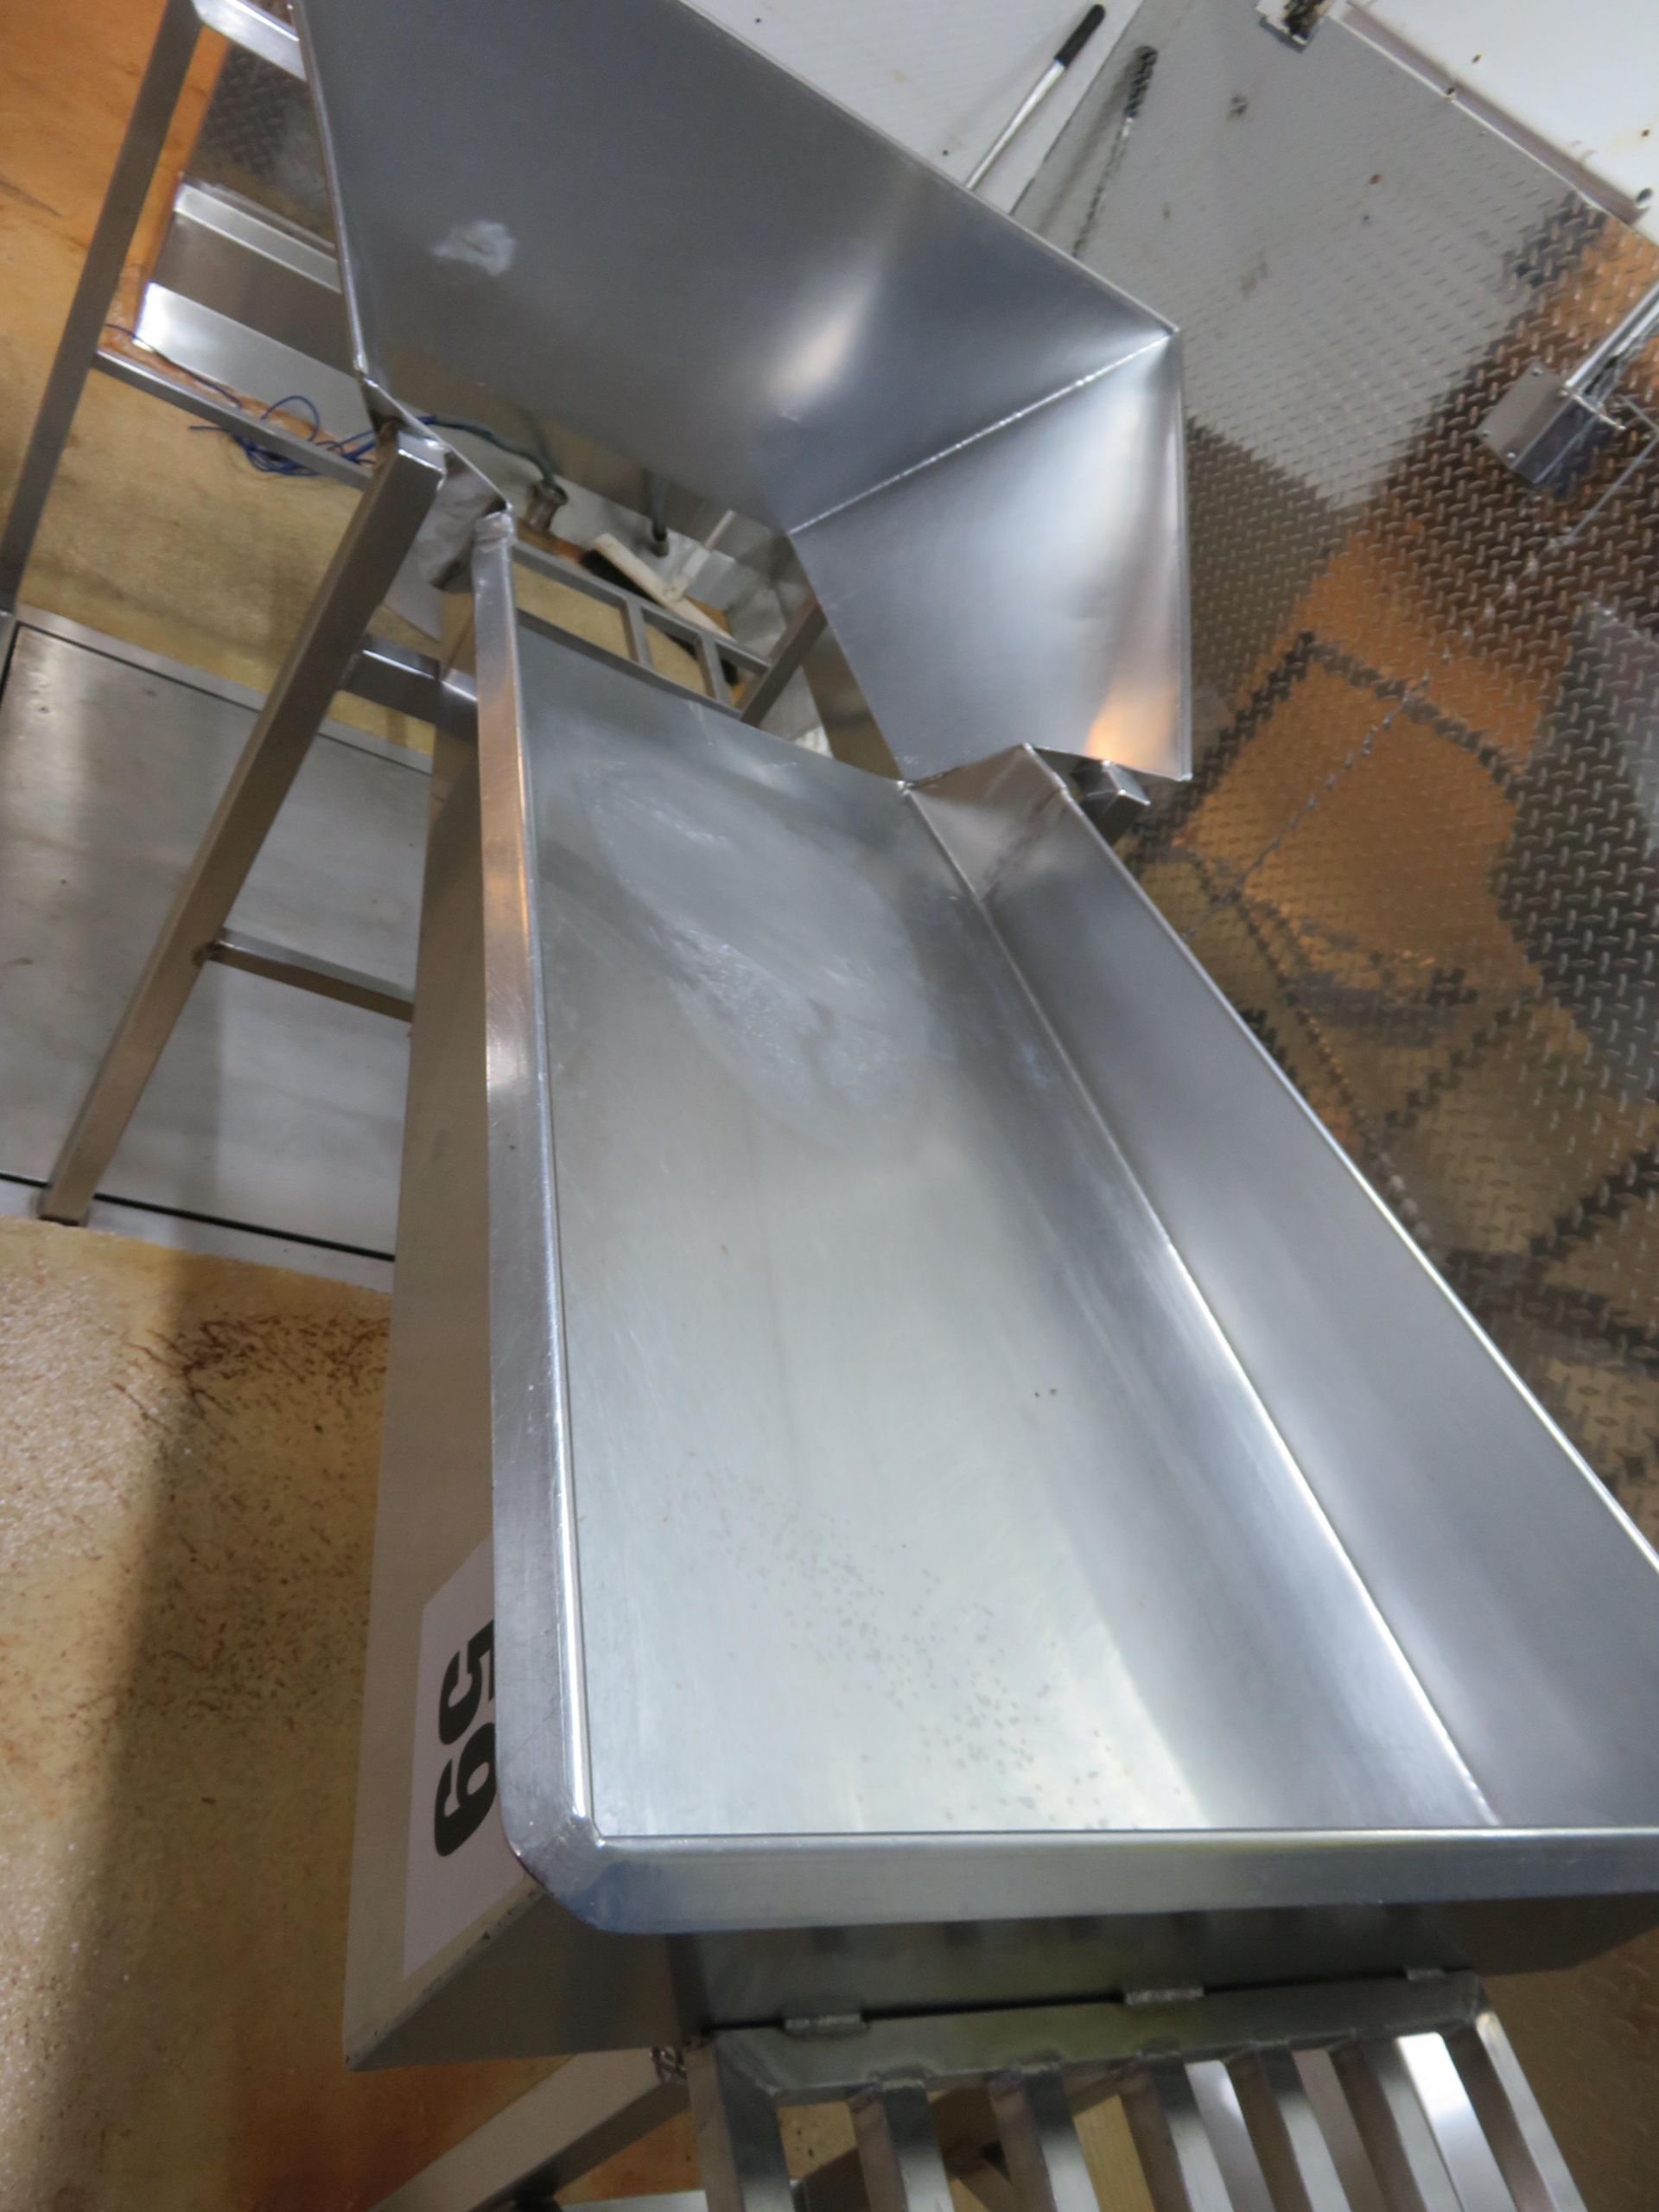 Lot 59 - S/s Sorting Table 2200 mm x 1100 mm. Lift out £30